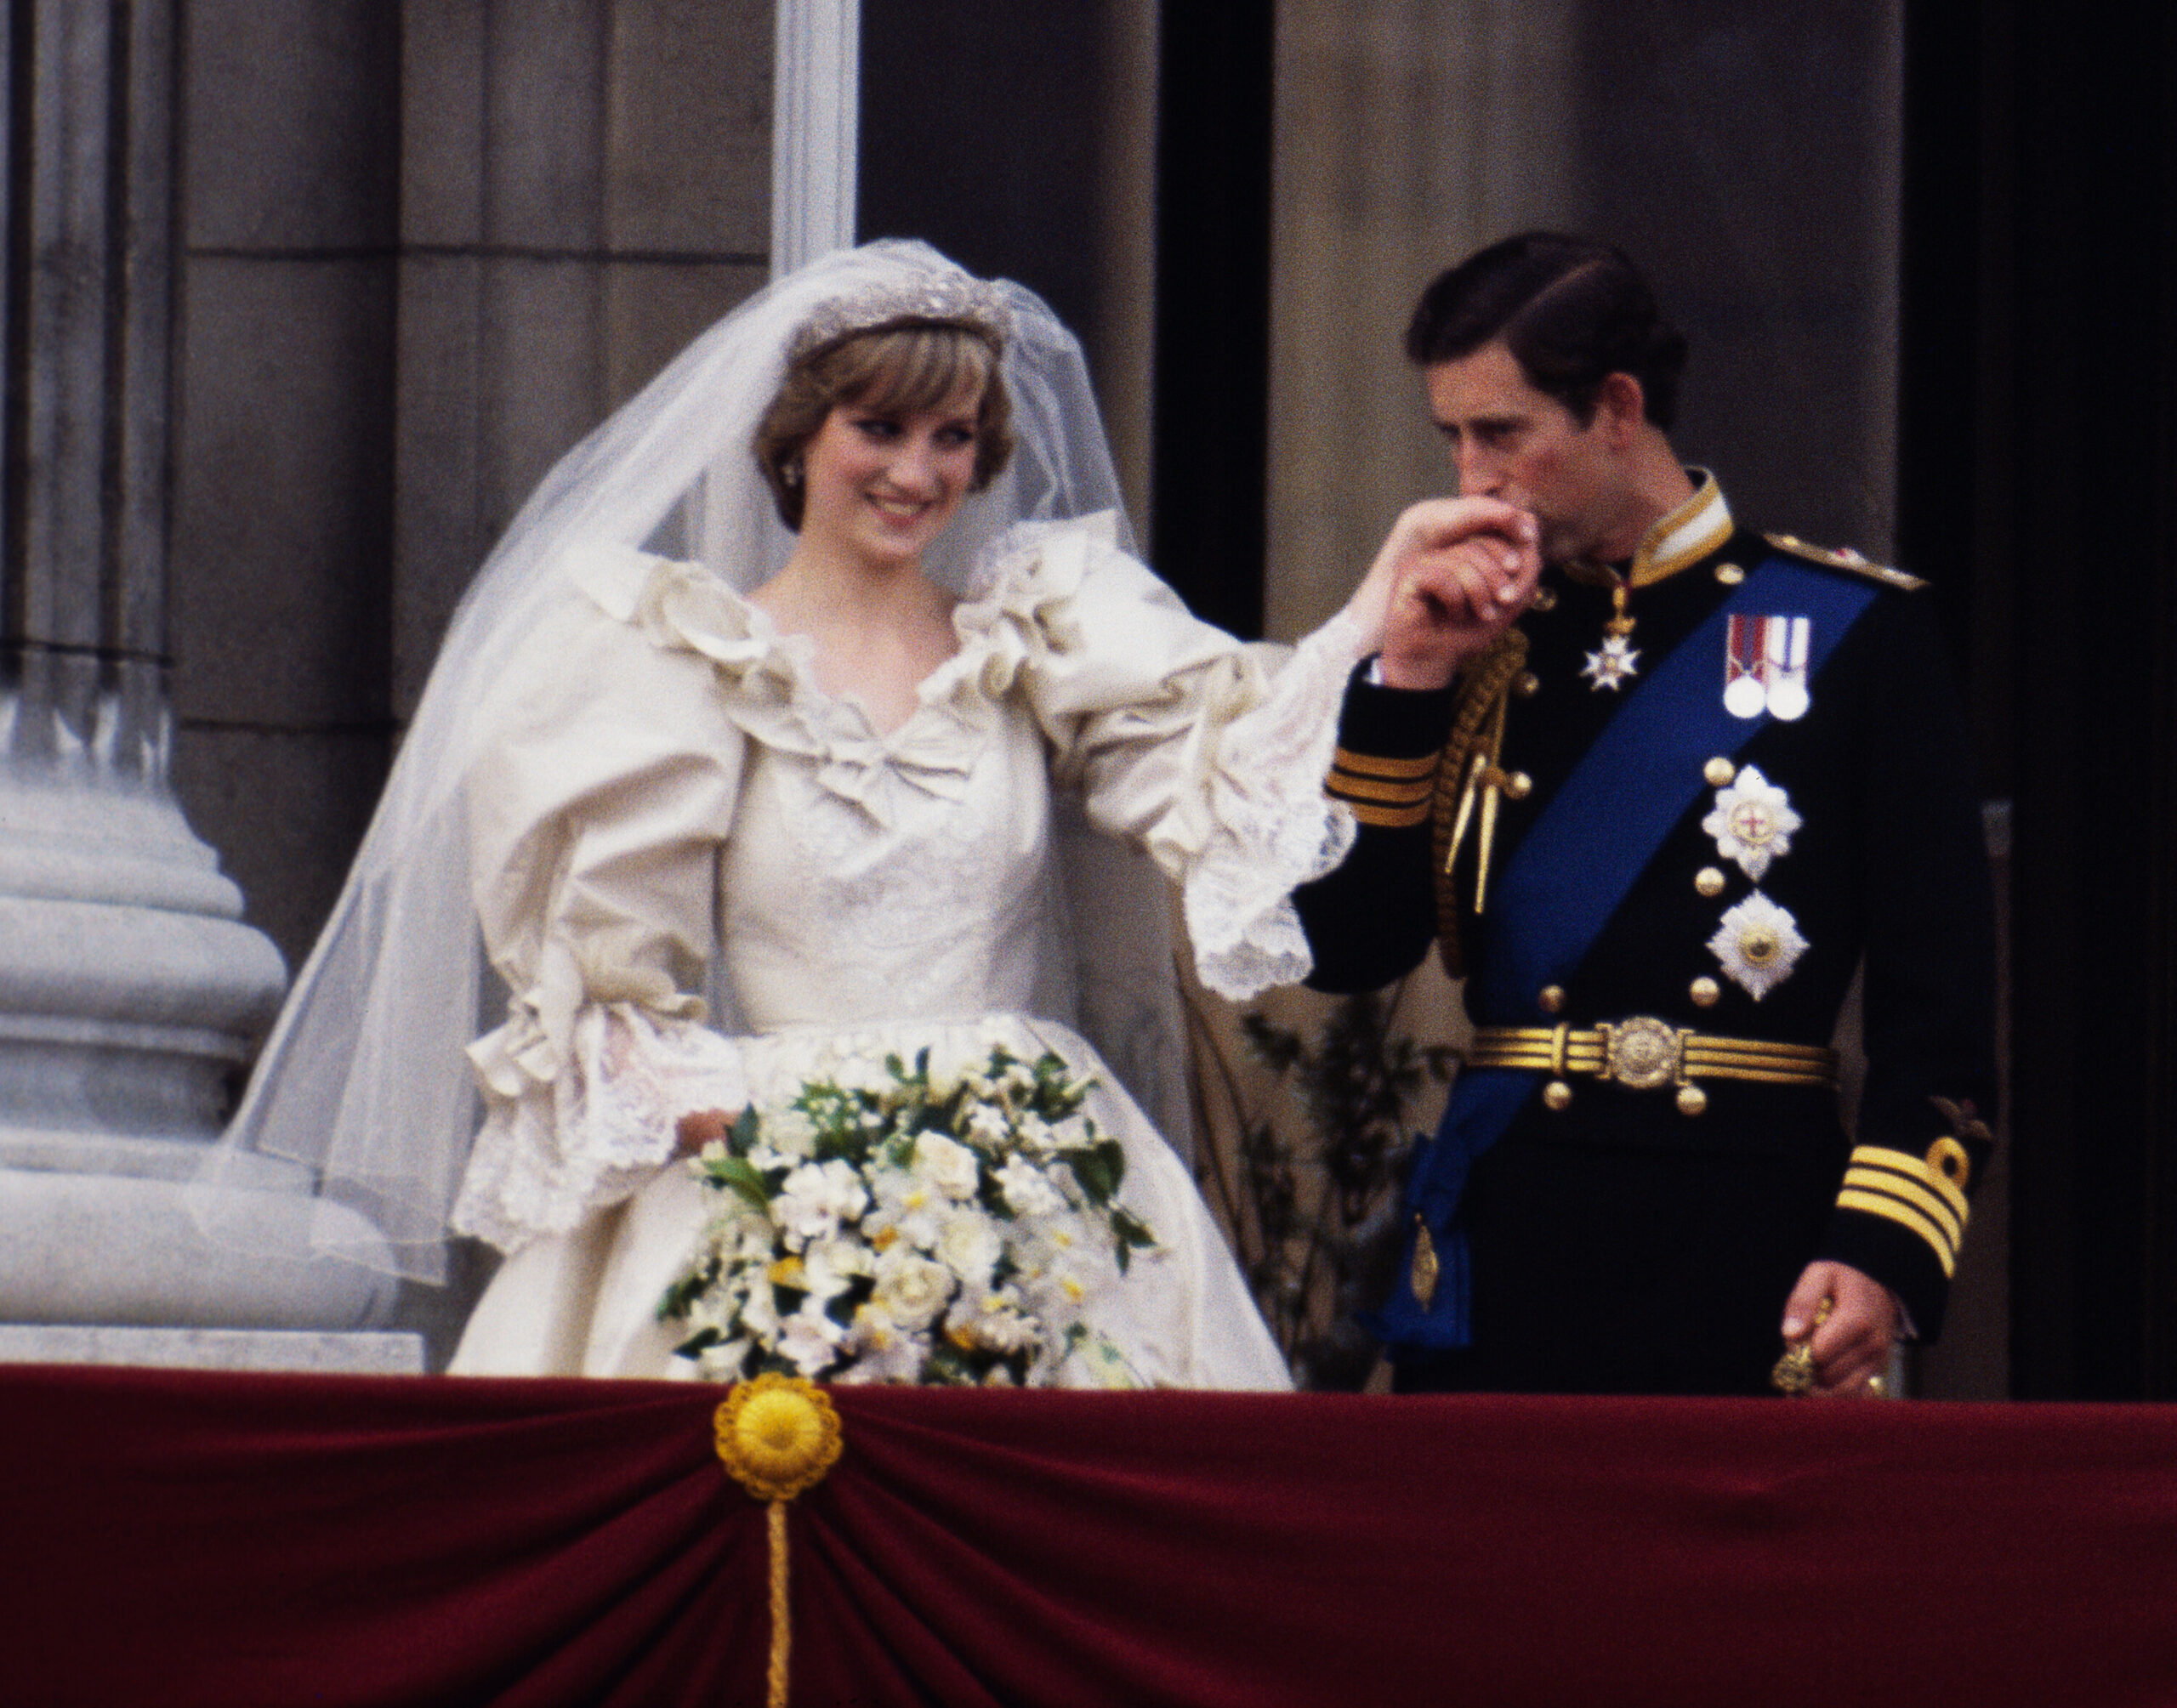 <i>Terry Fincher/Princess Diana Archive/Getty Images</i><br/>A slice of cake from Prince Charles and Princess Diana's 1981 wedding is going up for auction.